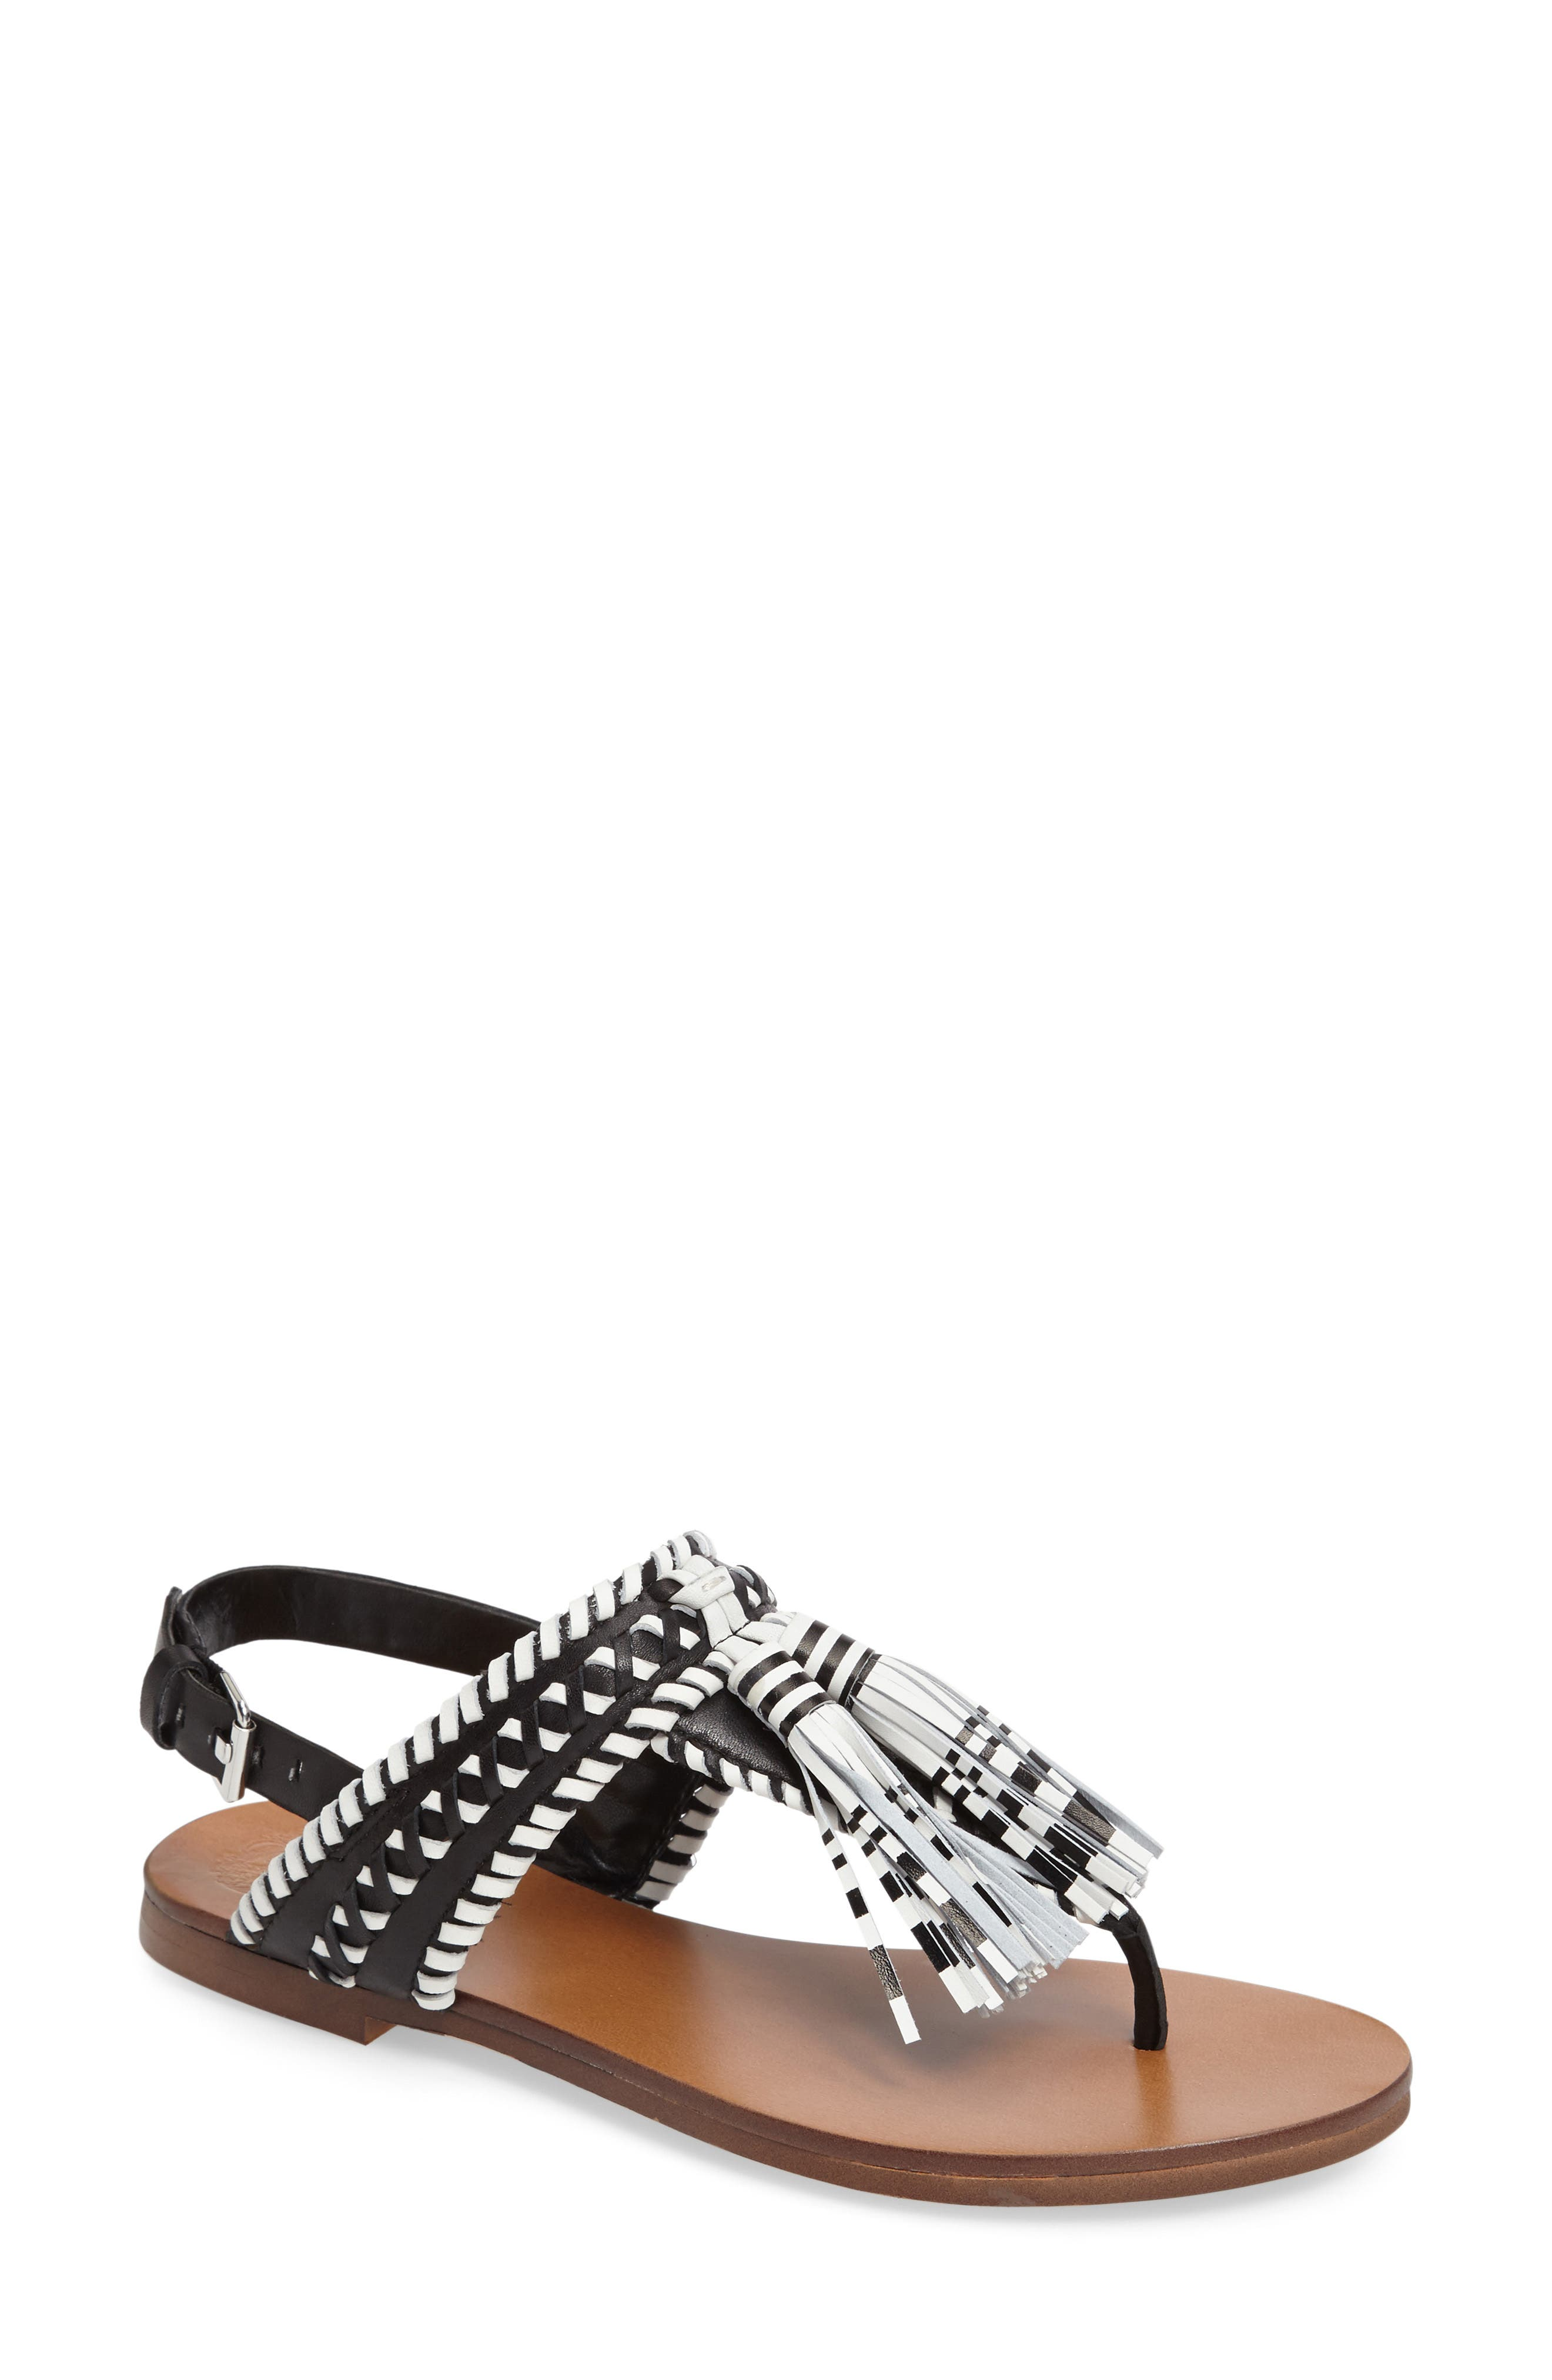 Rebeka Sandal,                             Main thumbnail 1, color,                             002